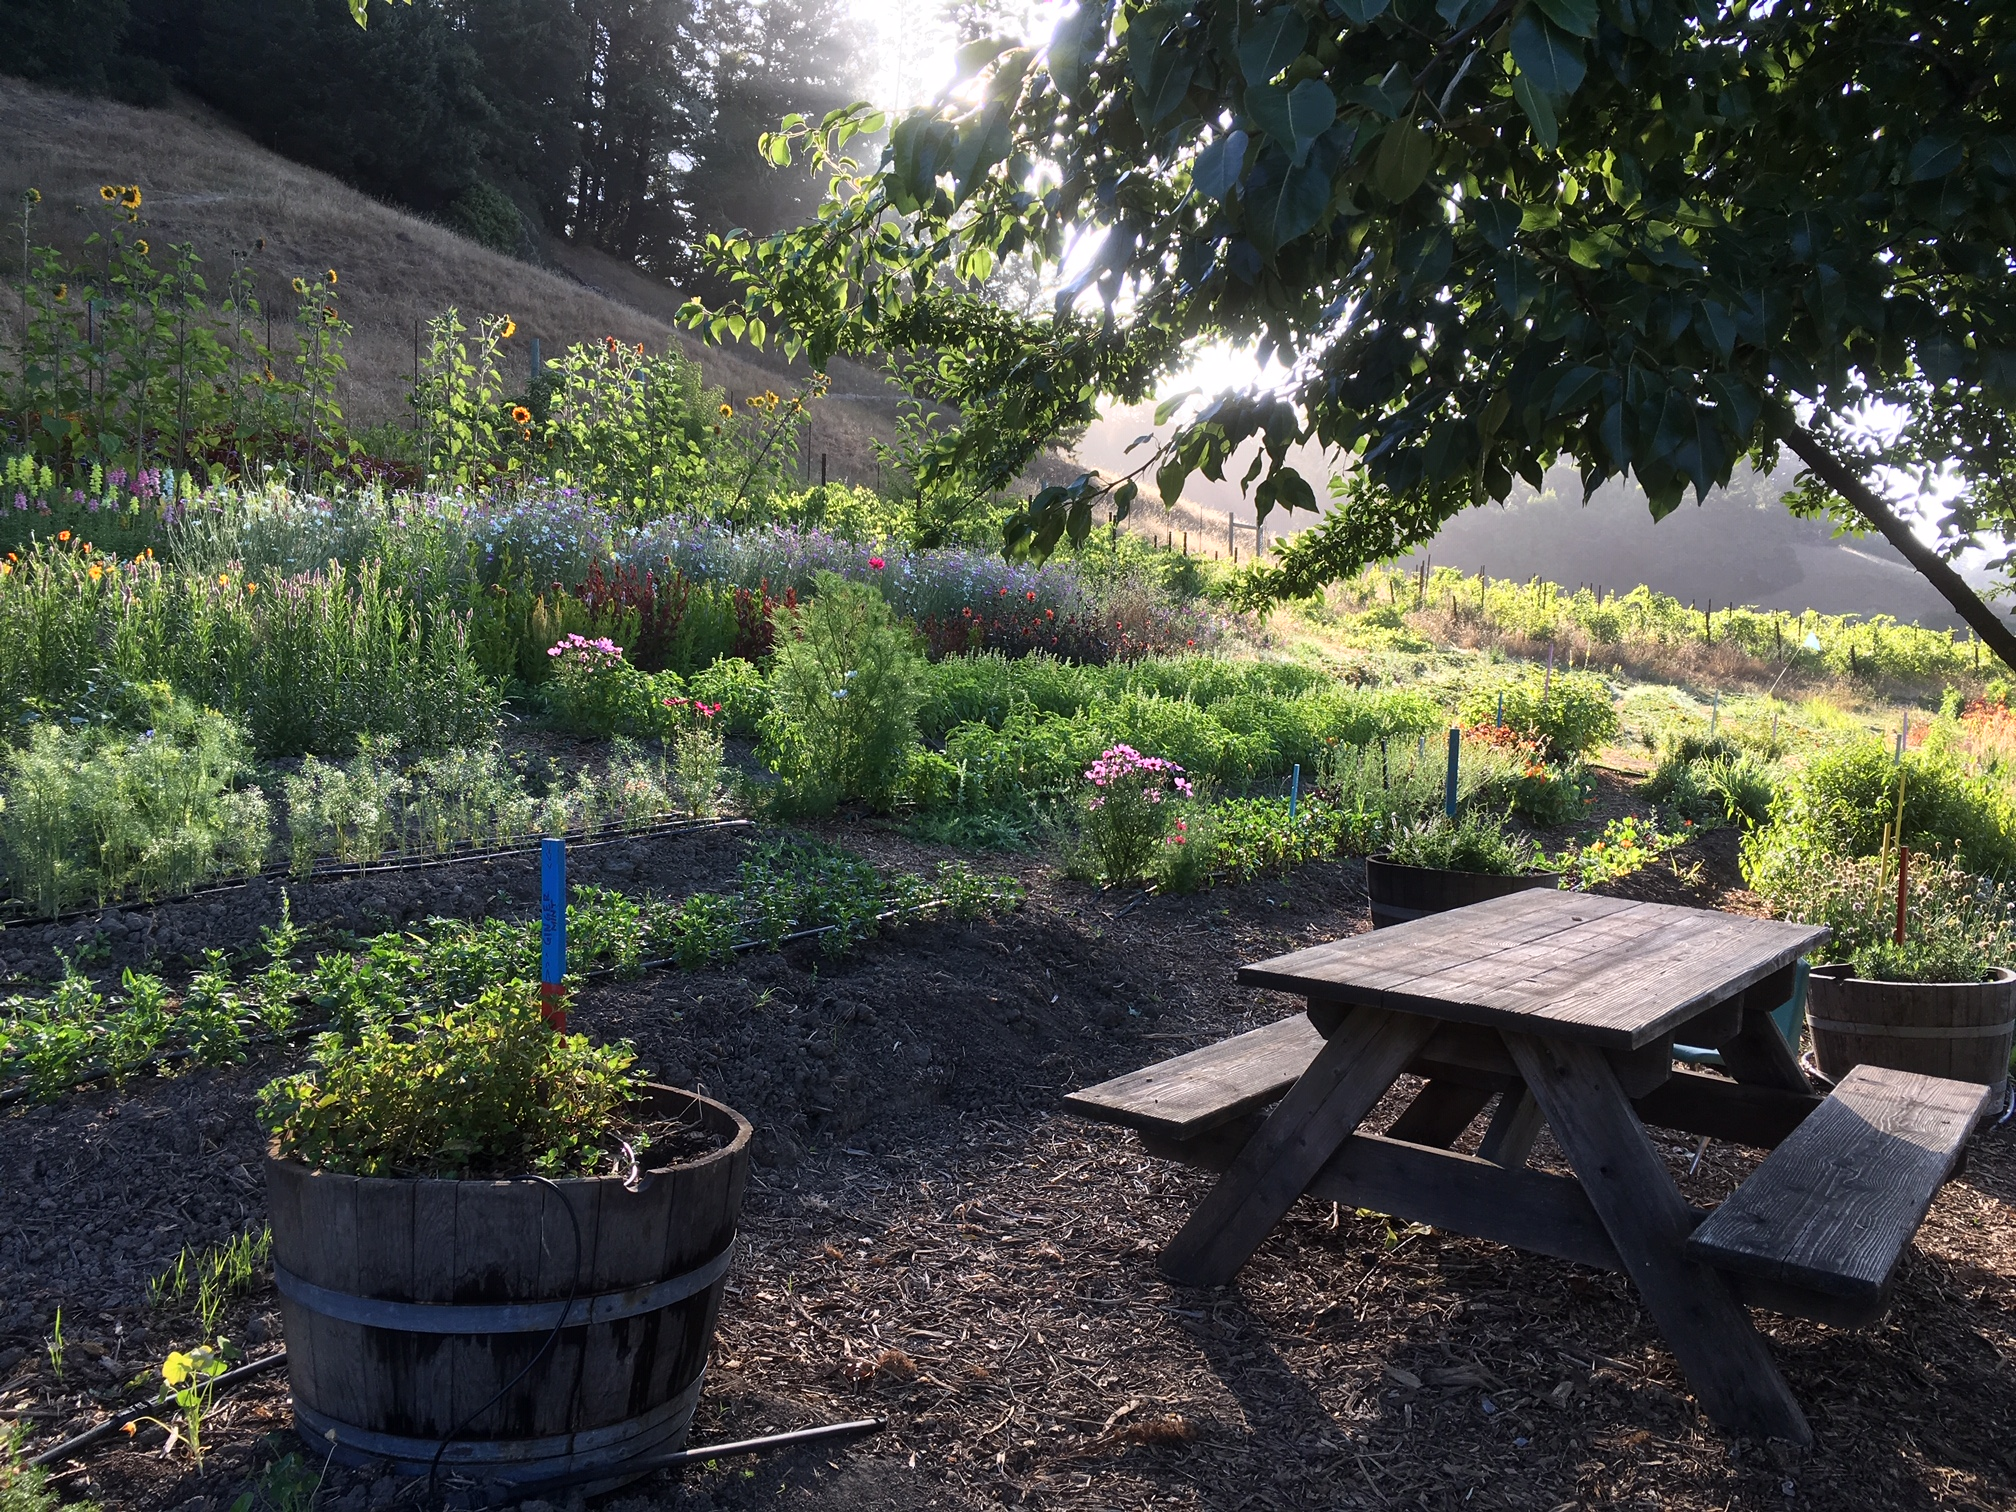 It's going to be hot on Saturday! Highly recommend a morning visit to the garden!